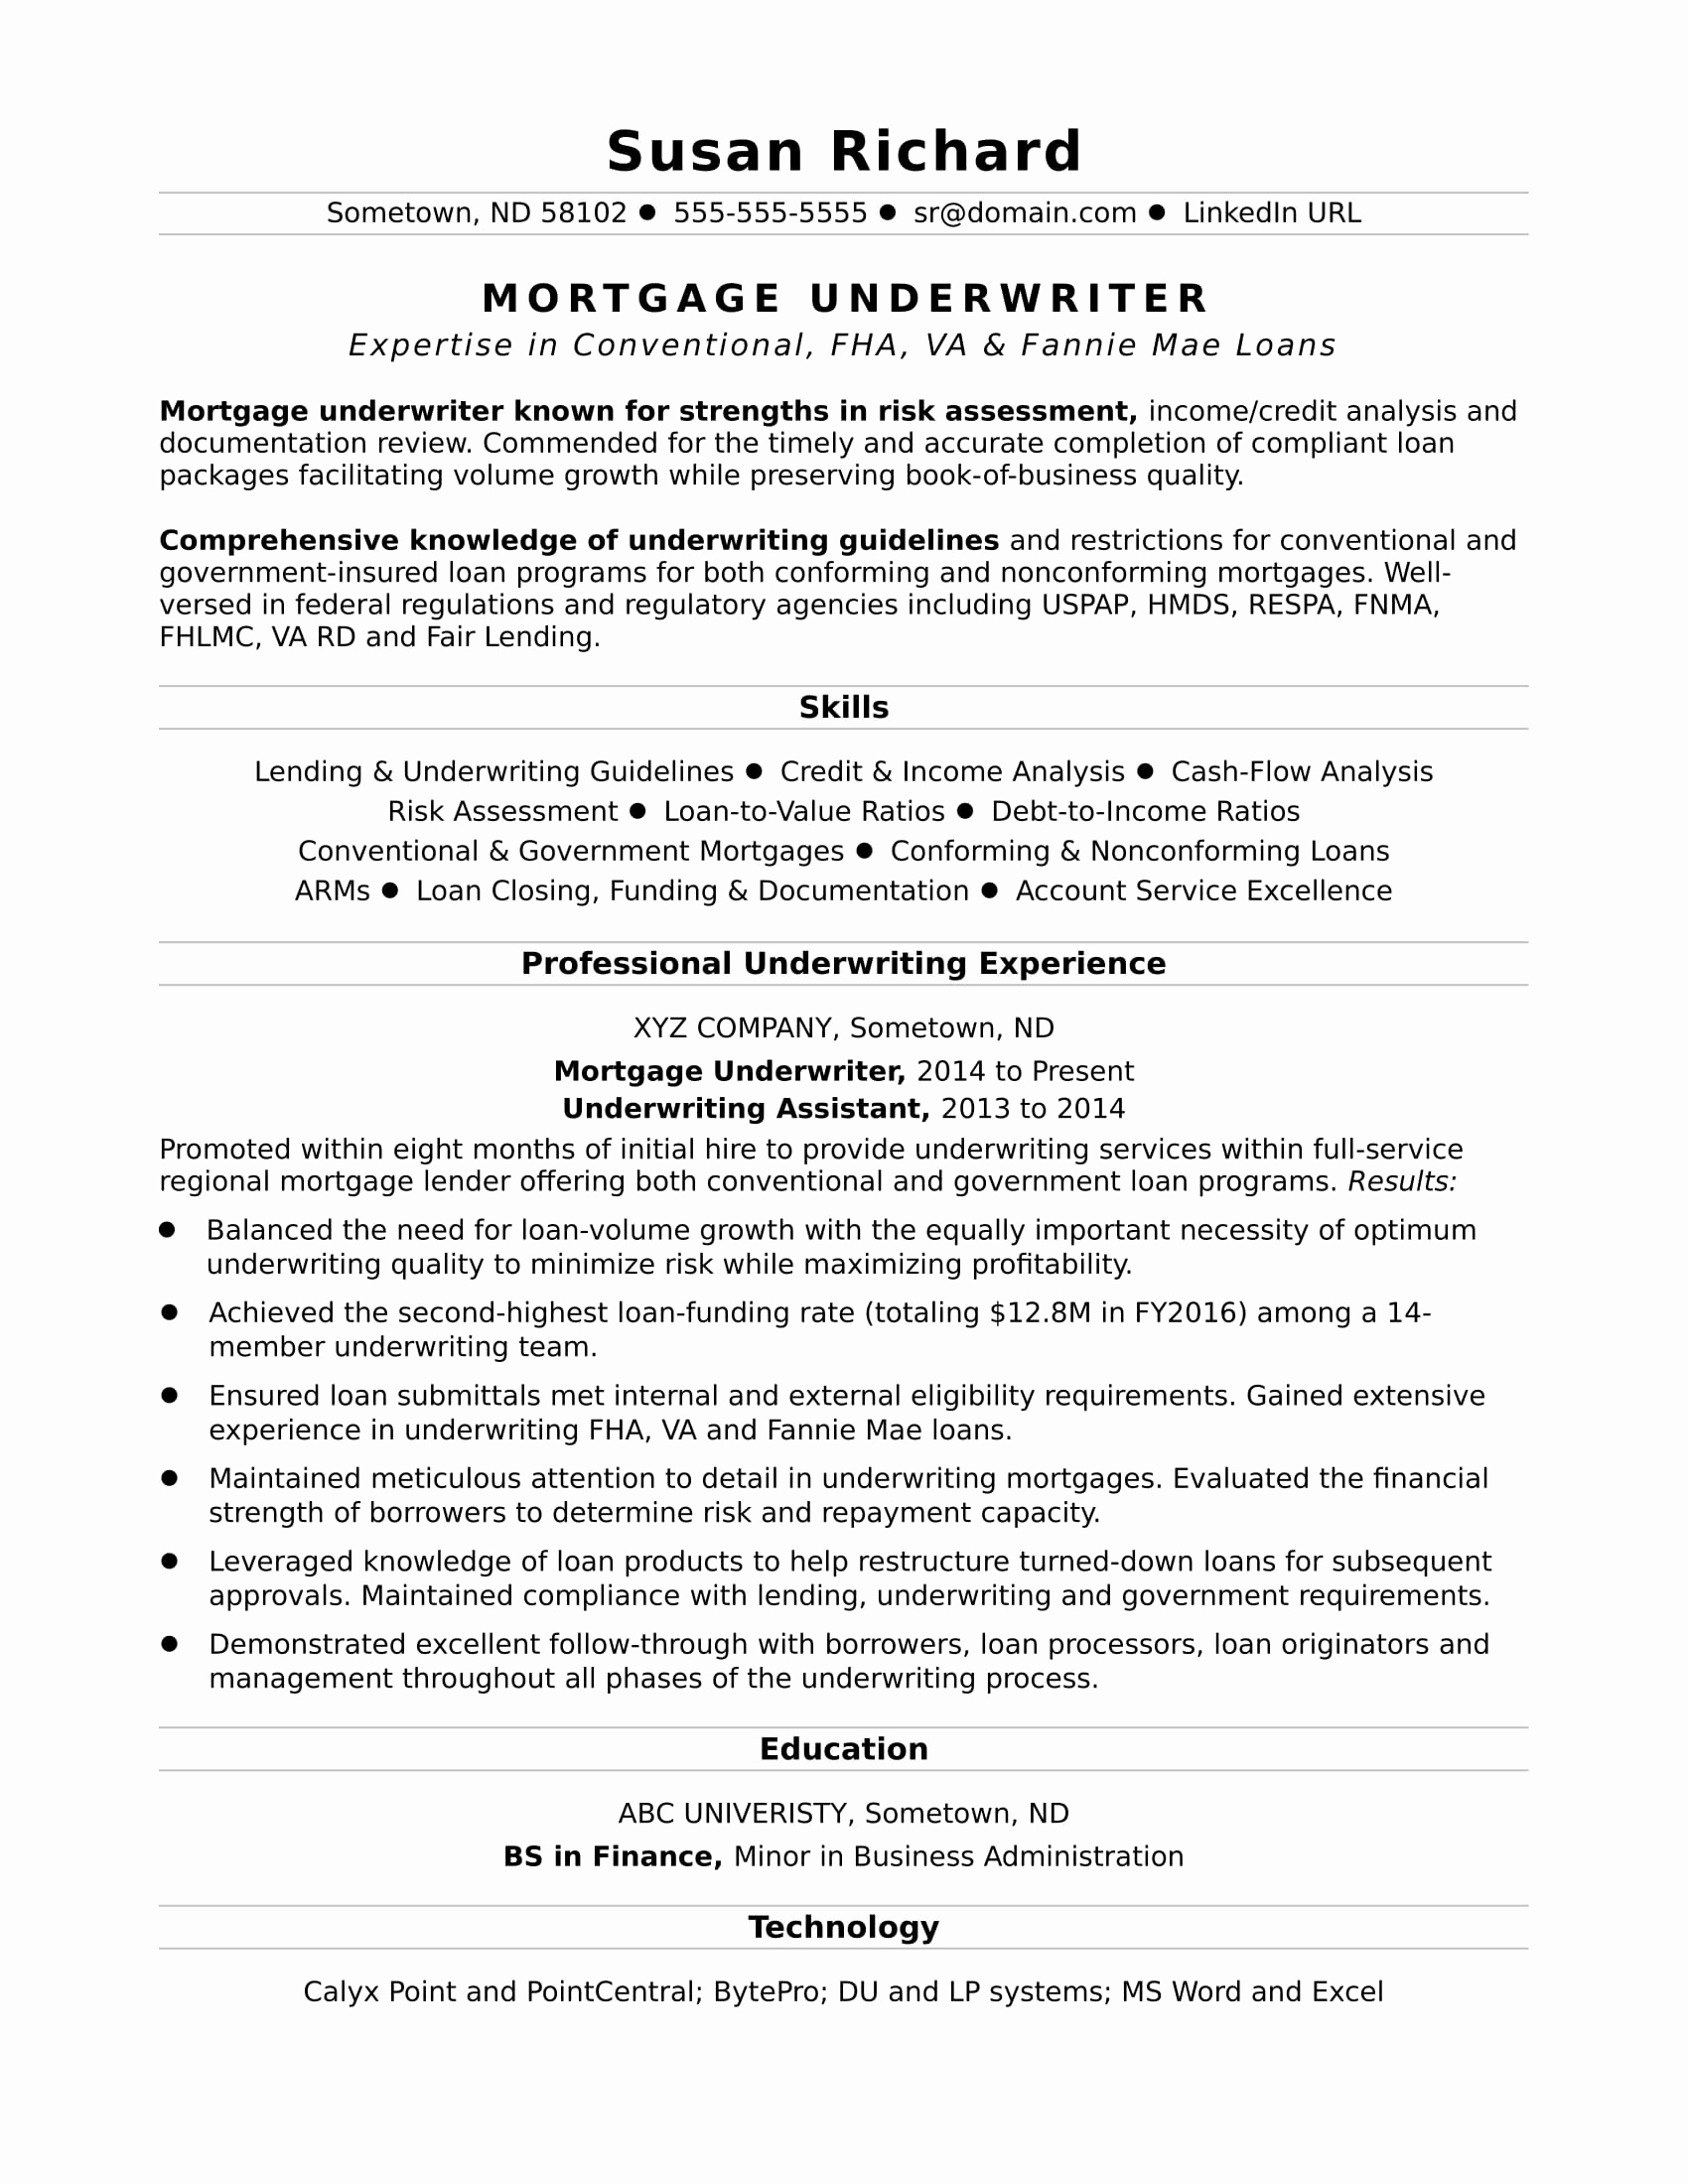 Linkedin Cover Letter Template - Linkedin Cover Letter Lovely Detailed Resume Template Luxury Signs